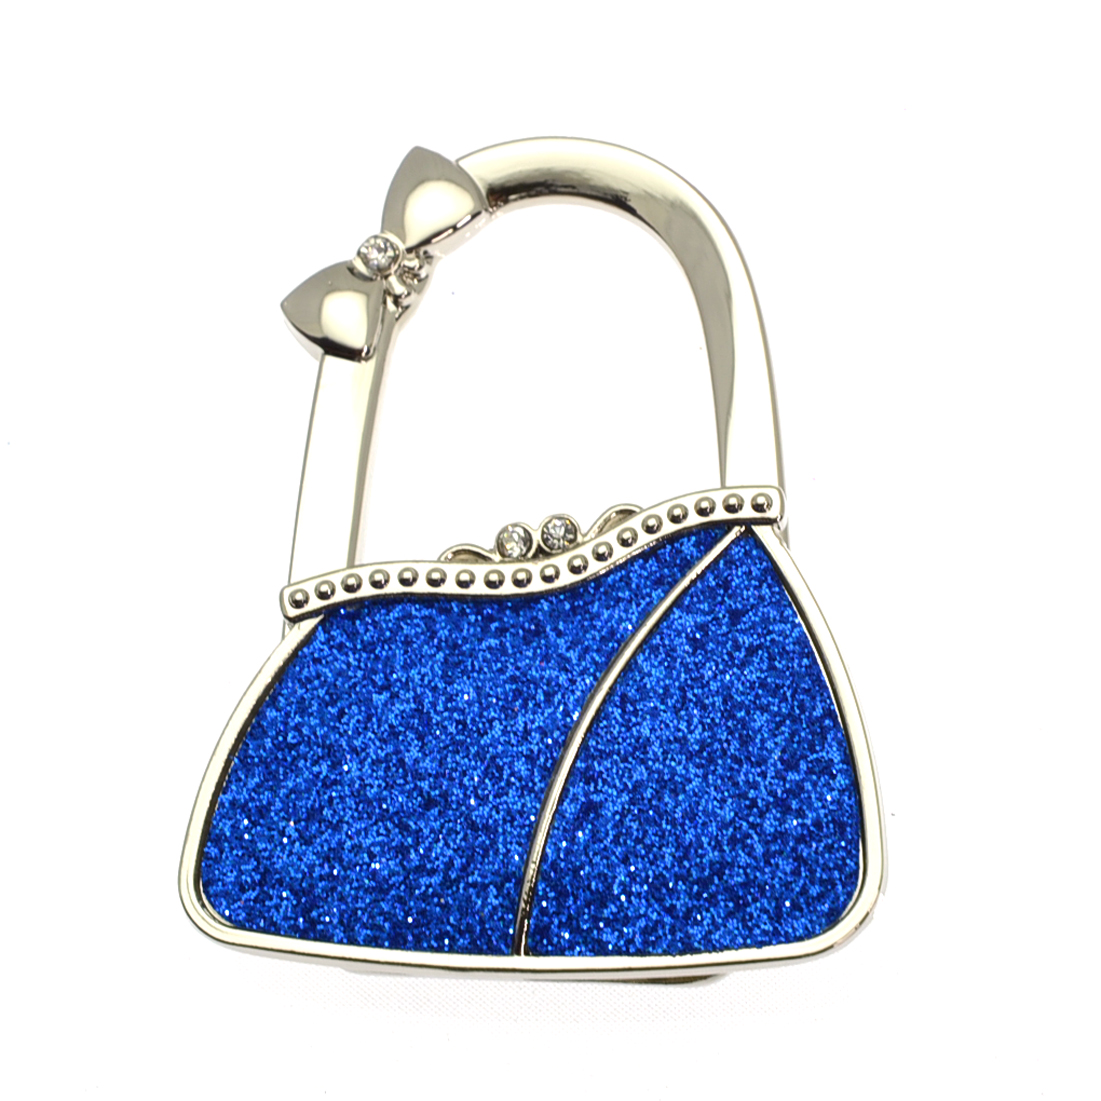 Textured Metal Purse Shape Handbag Bag Purse Hanger Table Hook